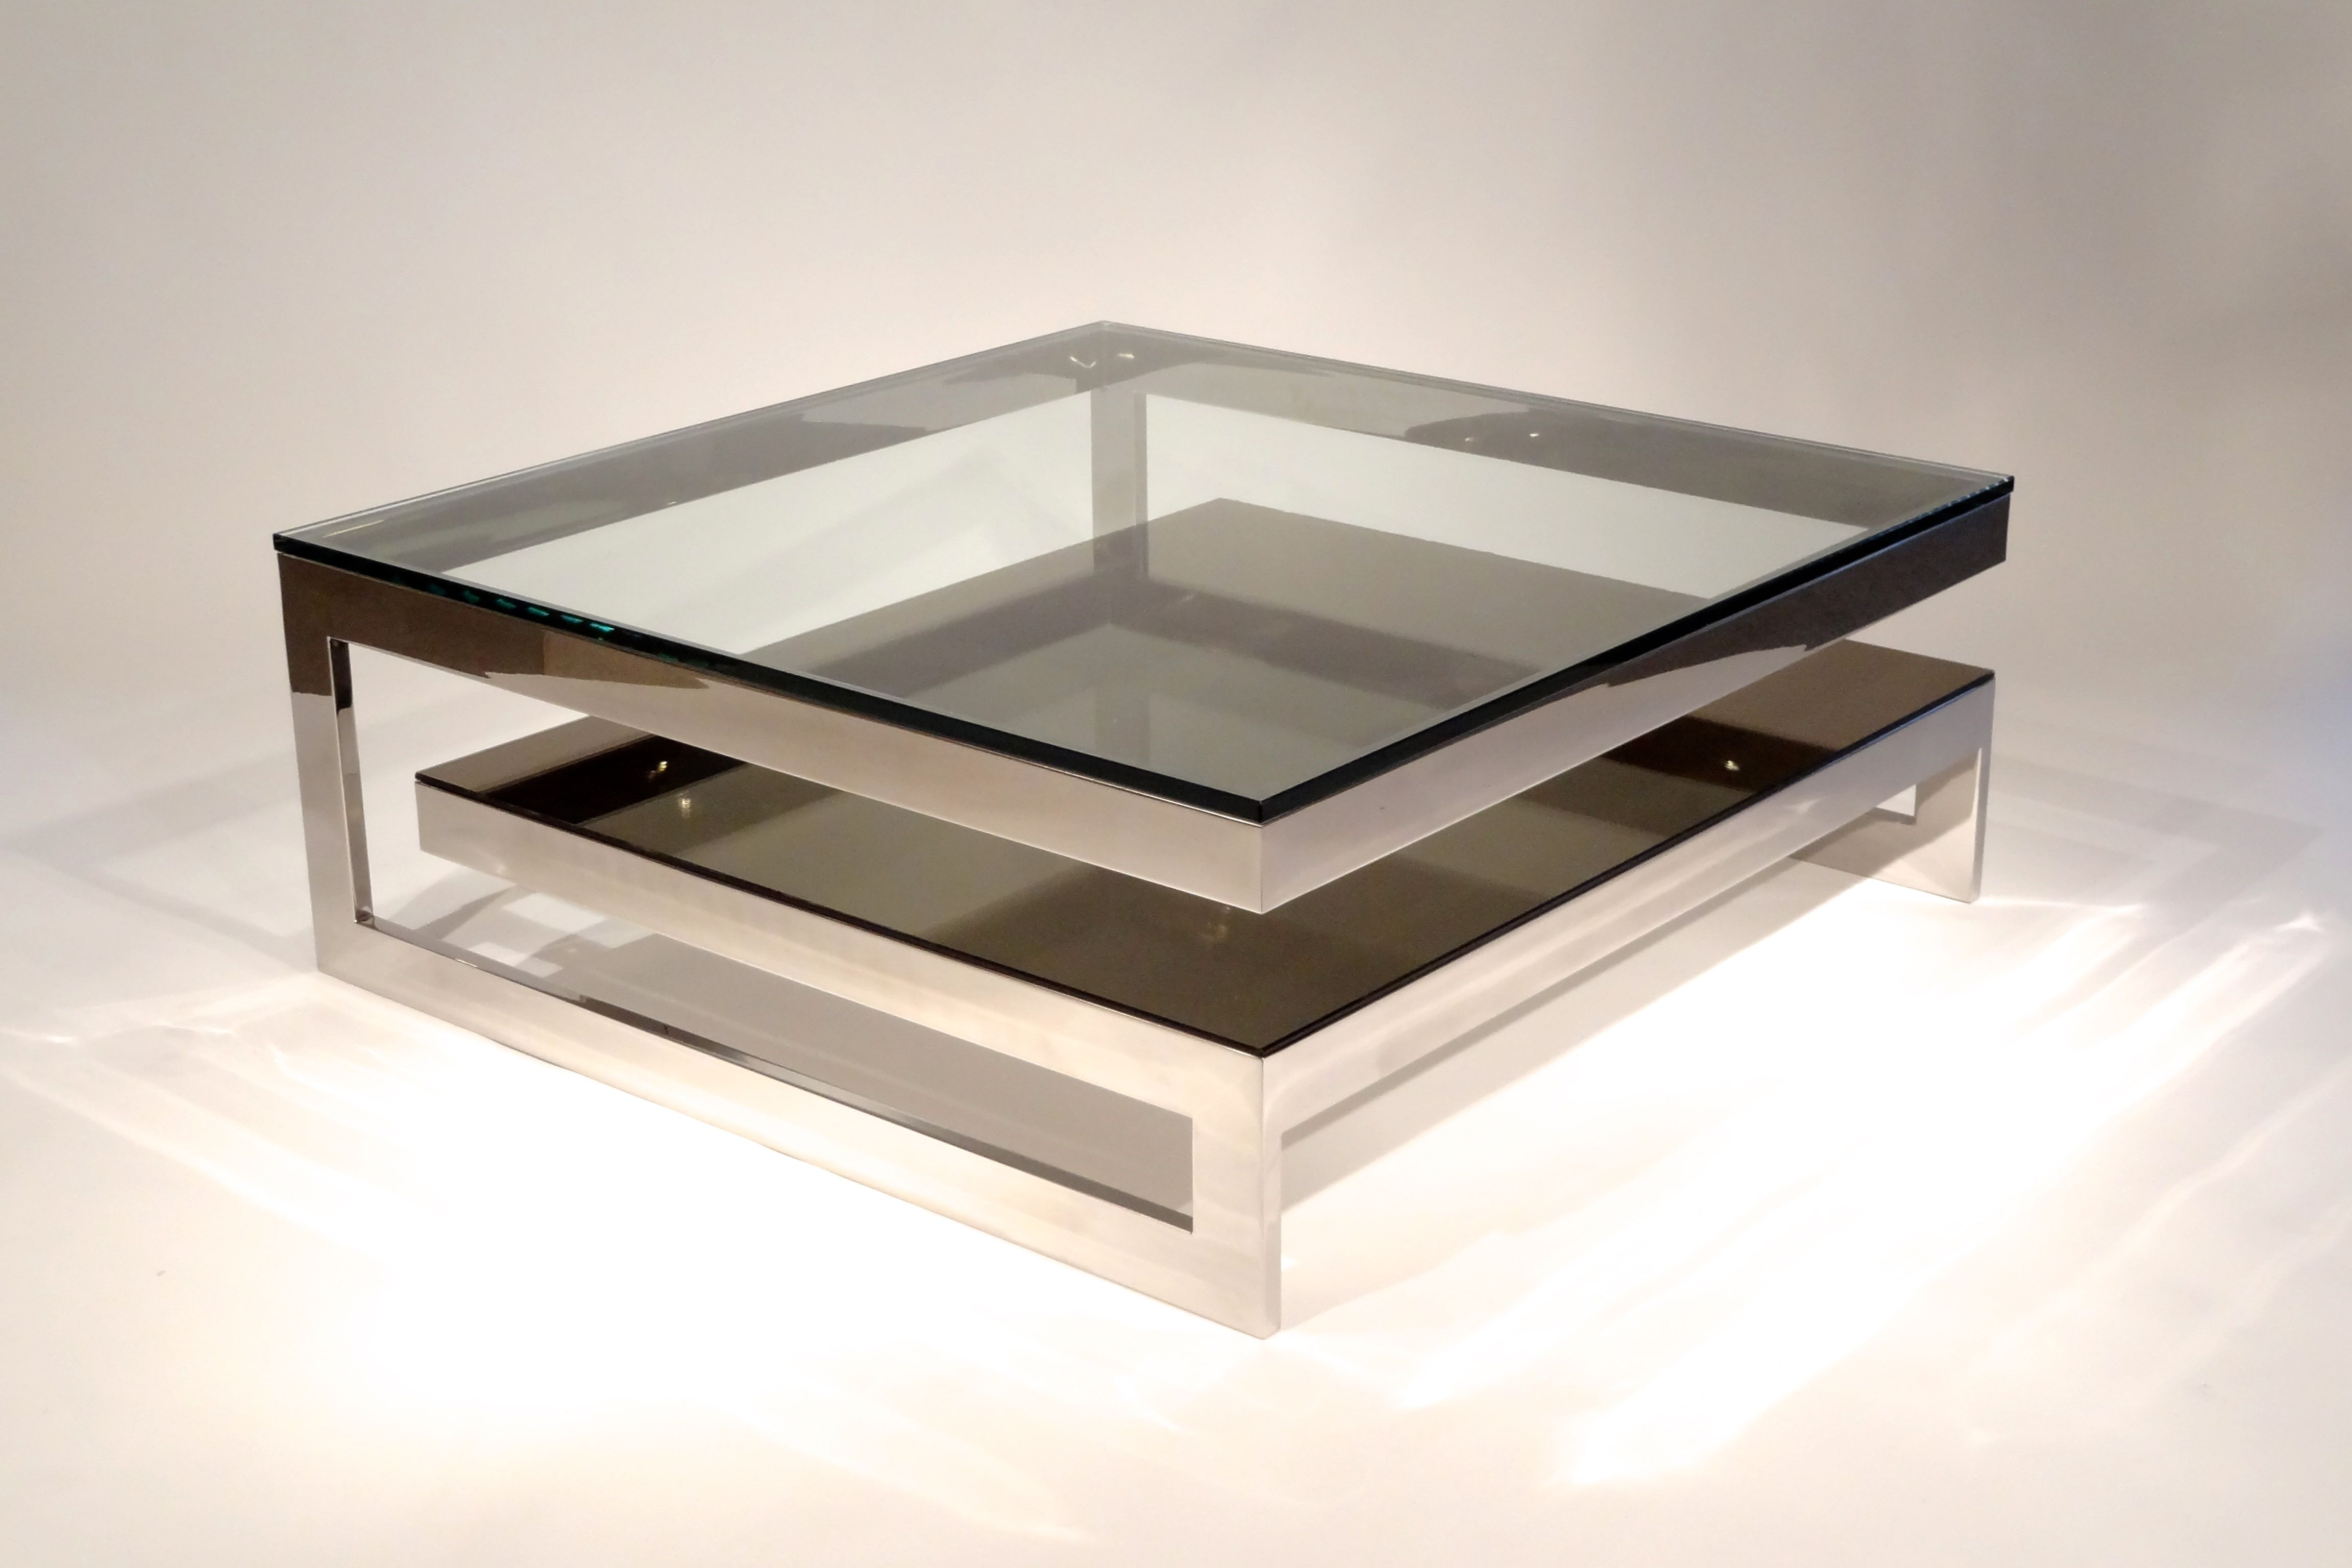 Mesmerizing Mirrored Coffee Table for Your Living Room Decor and Furniture   Adorable Two Tier Contemporary. Mesmerizing Mirrored Coffee Table for Your Living Room Decor and